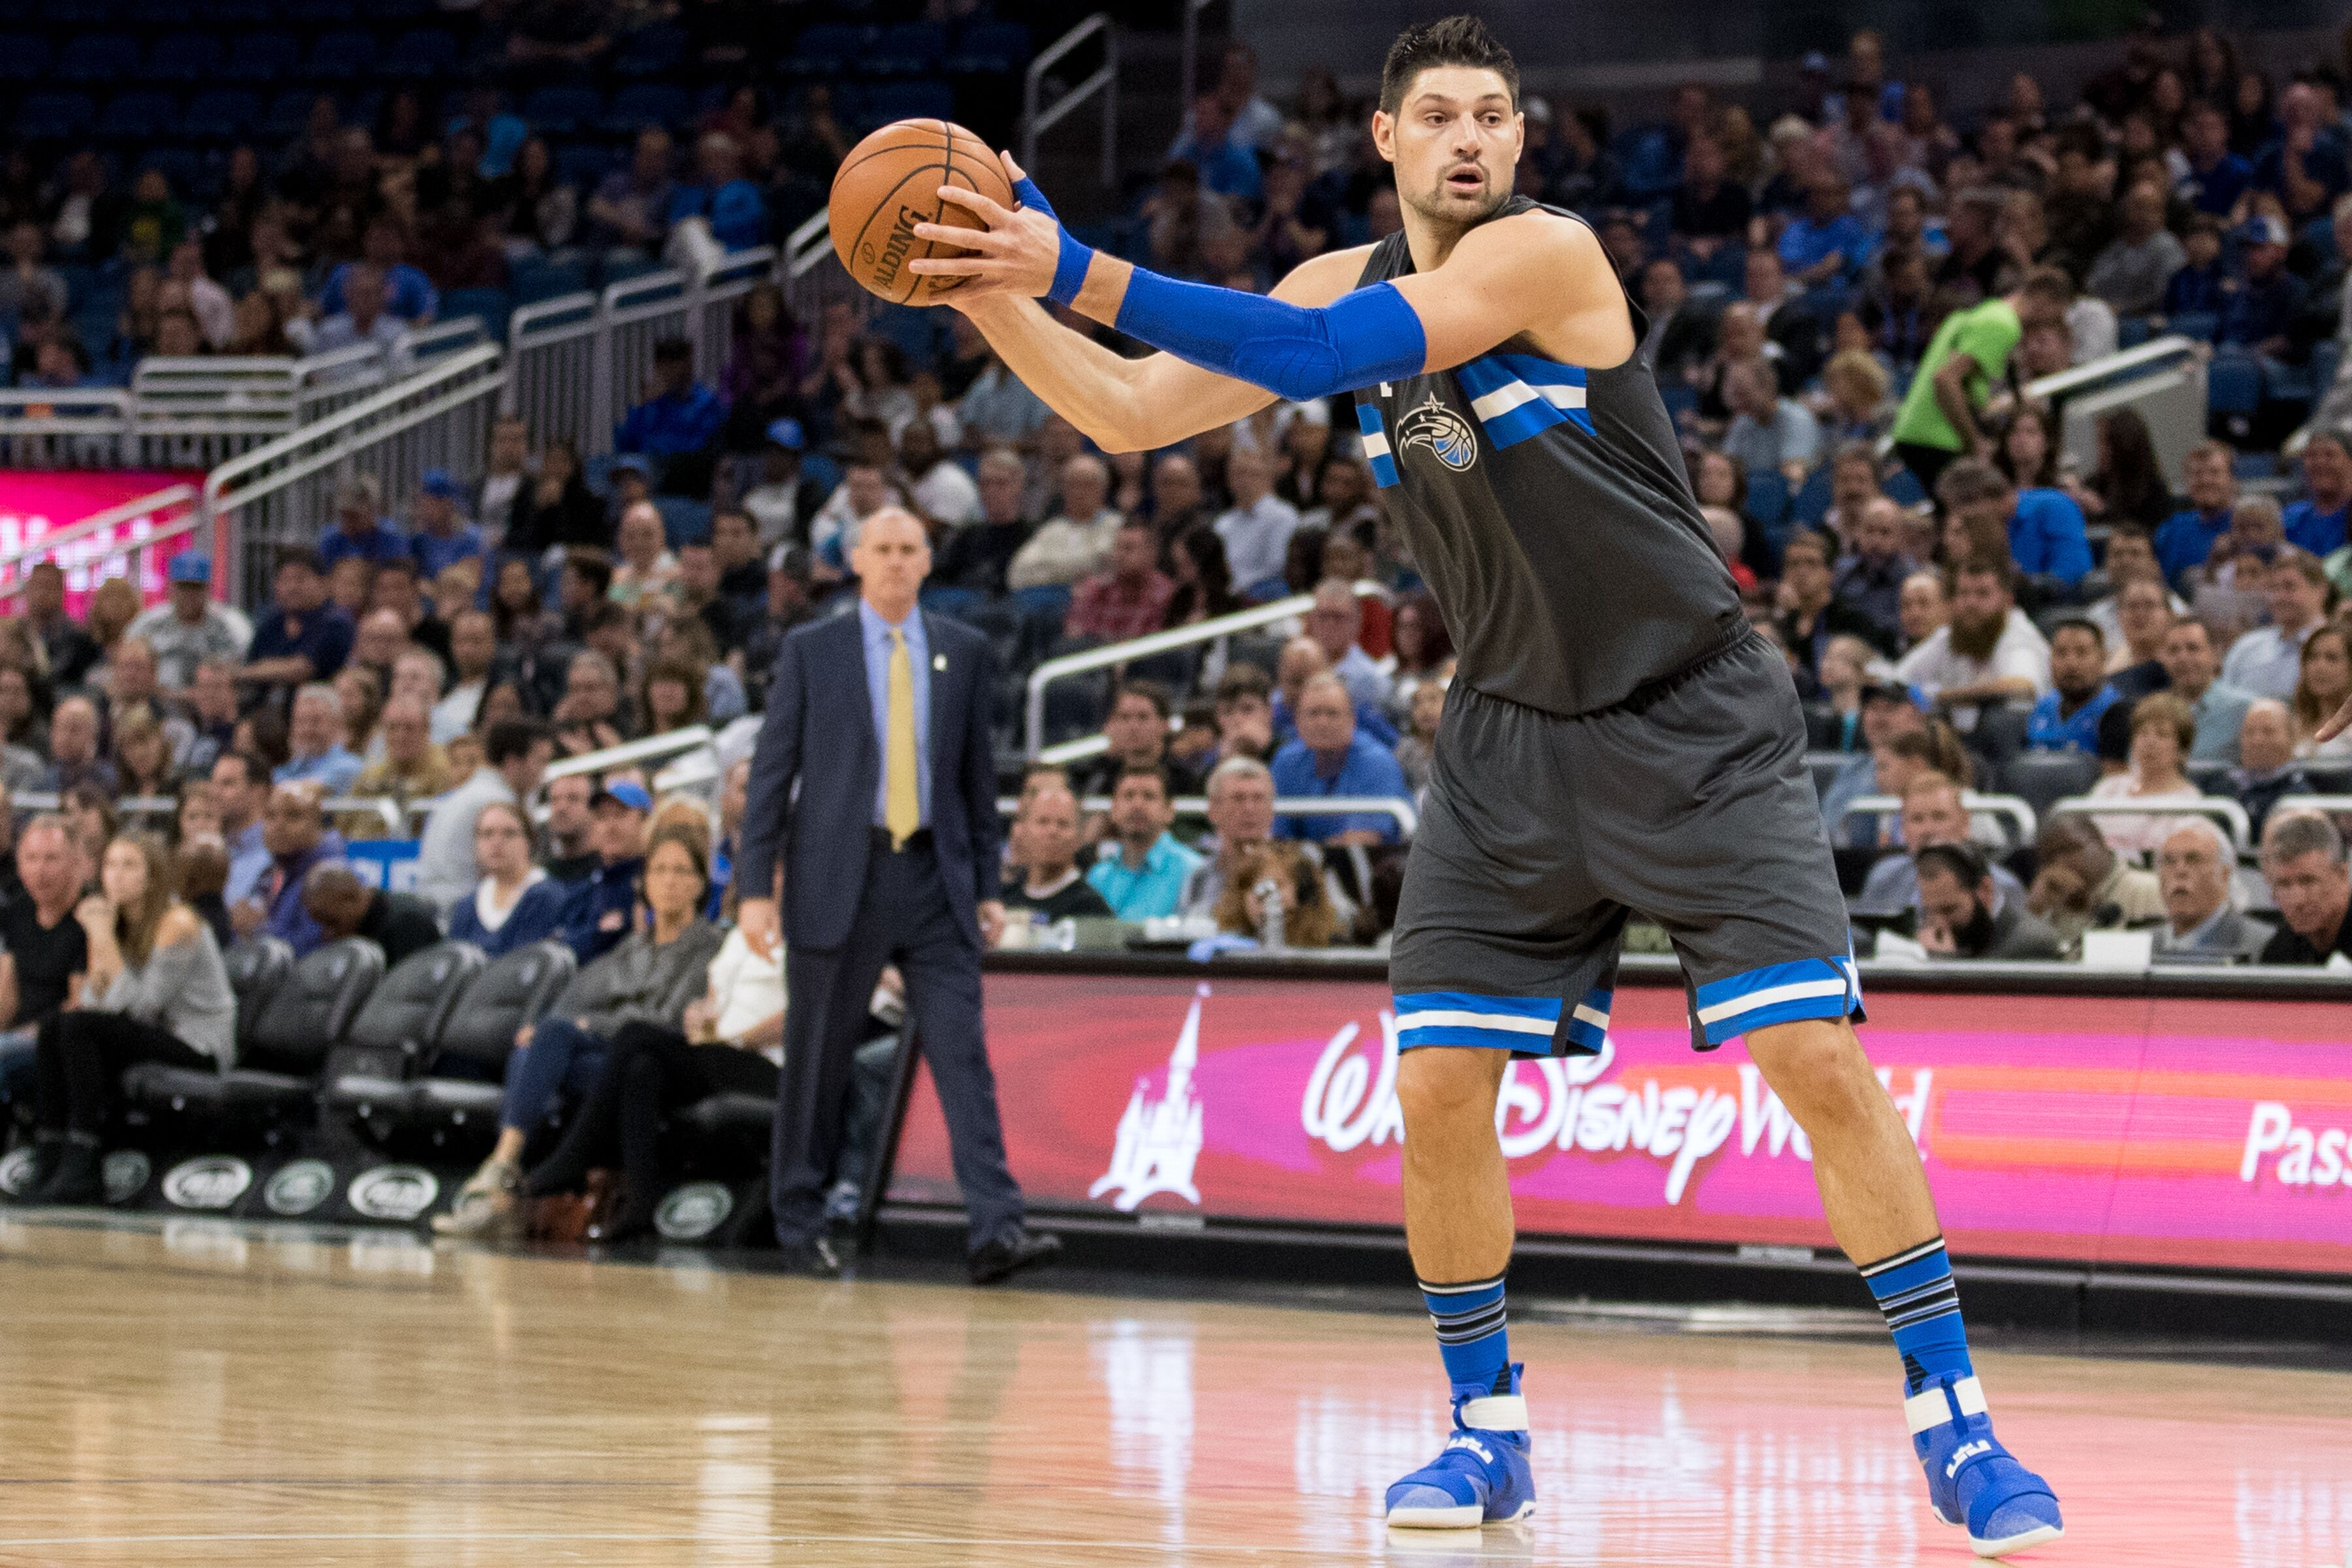 Leaked Orlando Magic NBA2K18 ratings are sure to make fans upset